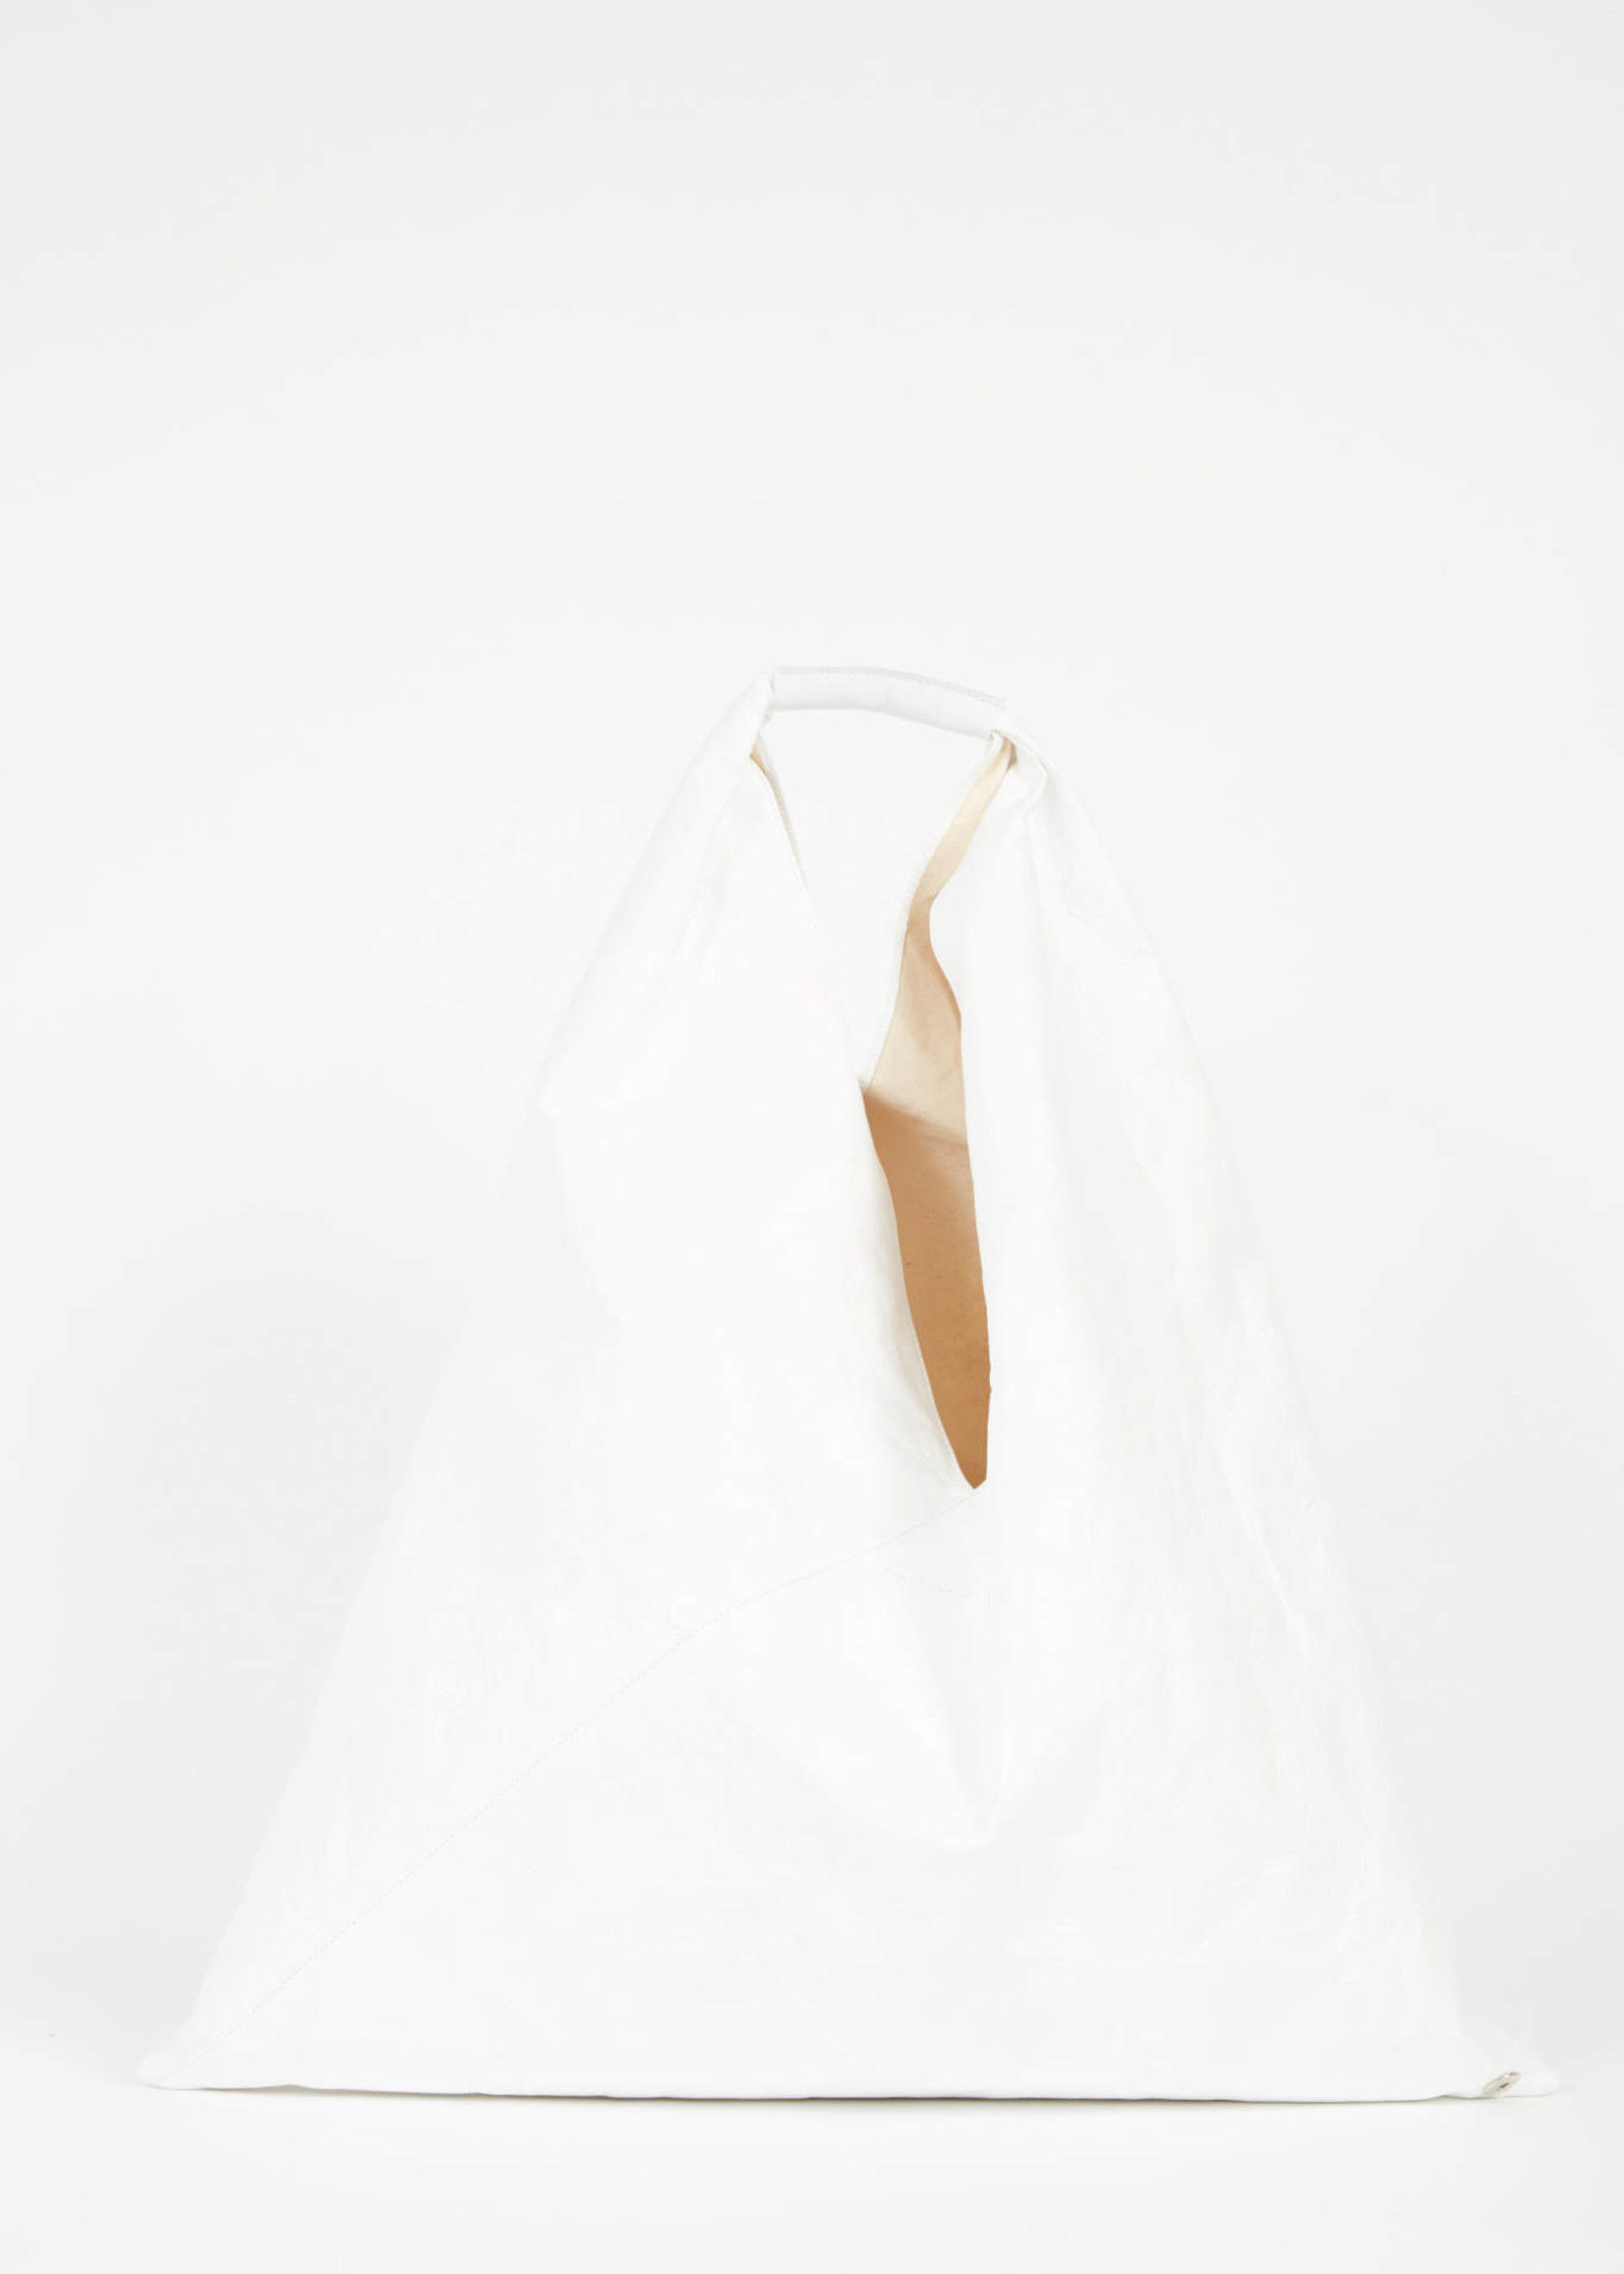 MM6 MAISON MARGIELA Medium Japanese Tote in White Recycled Paper